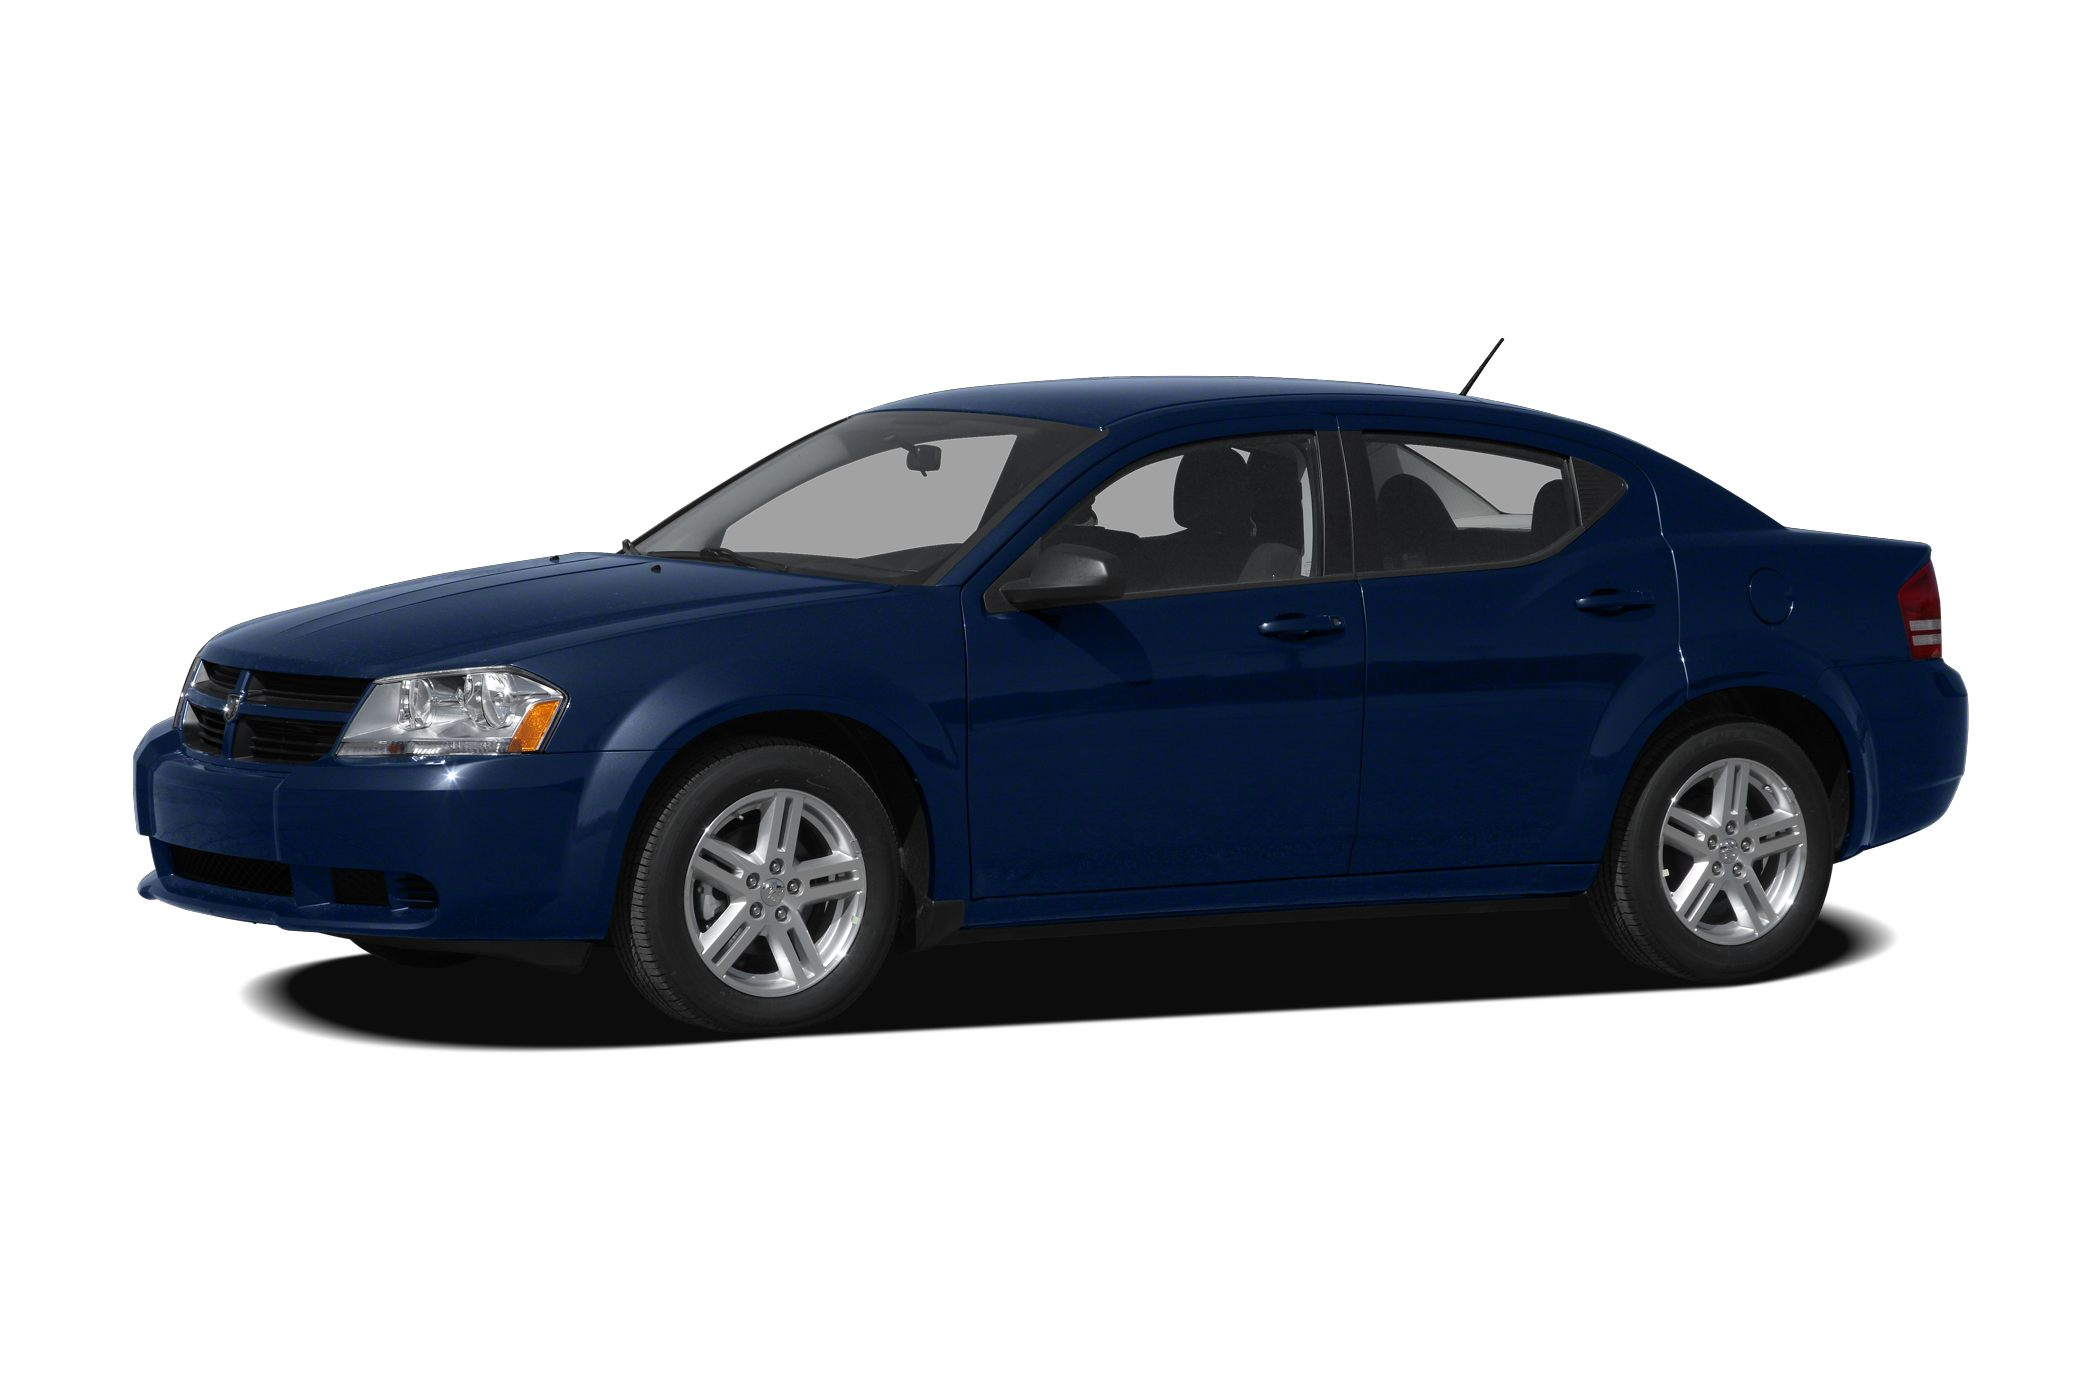 2010 Dodge Avenger SXT Sedan for sale in Dayton for $10,986 with 66,921 miles.